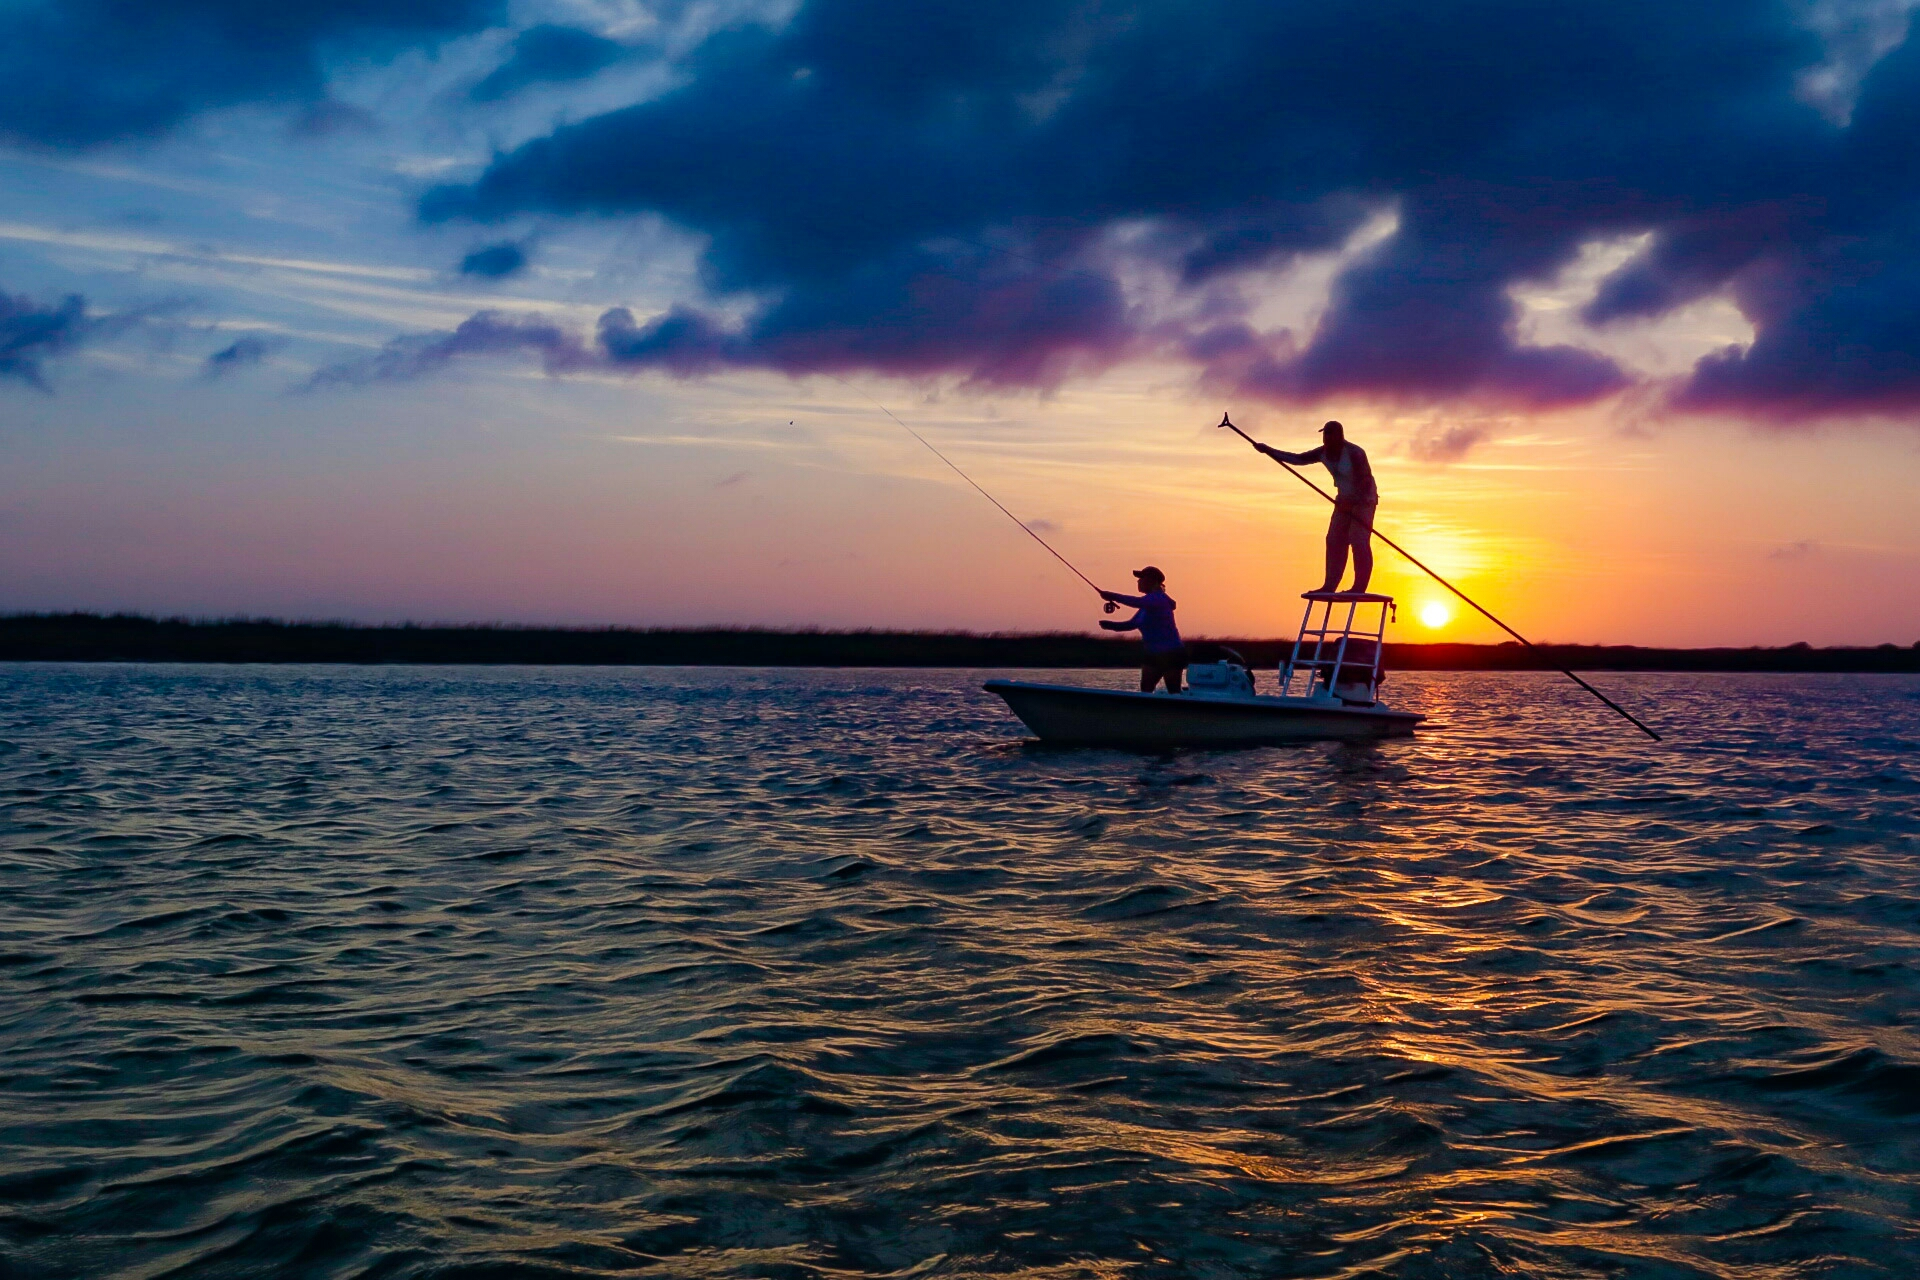 Anglers casting a line at sunset.